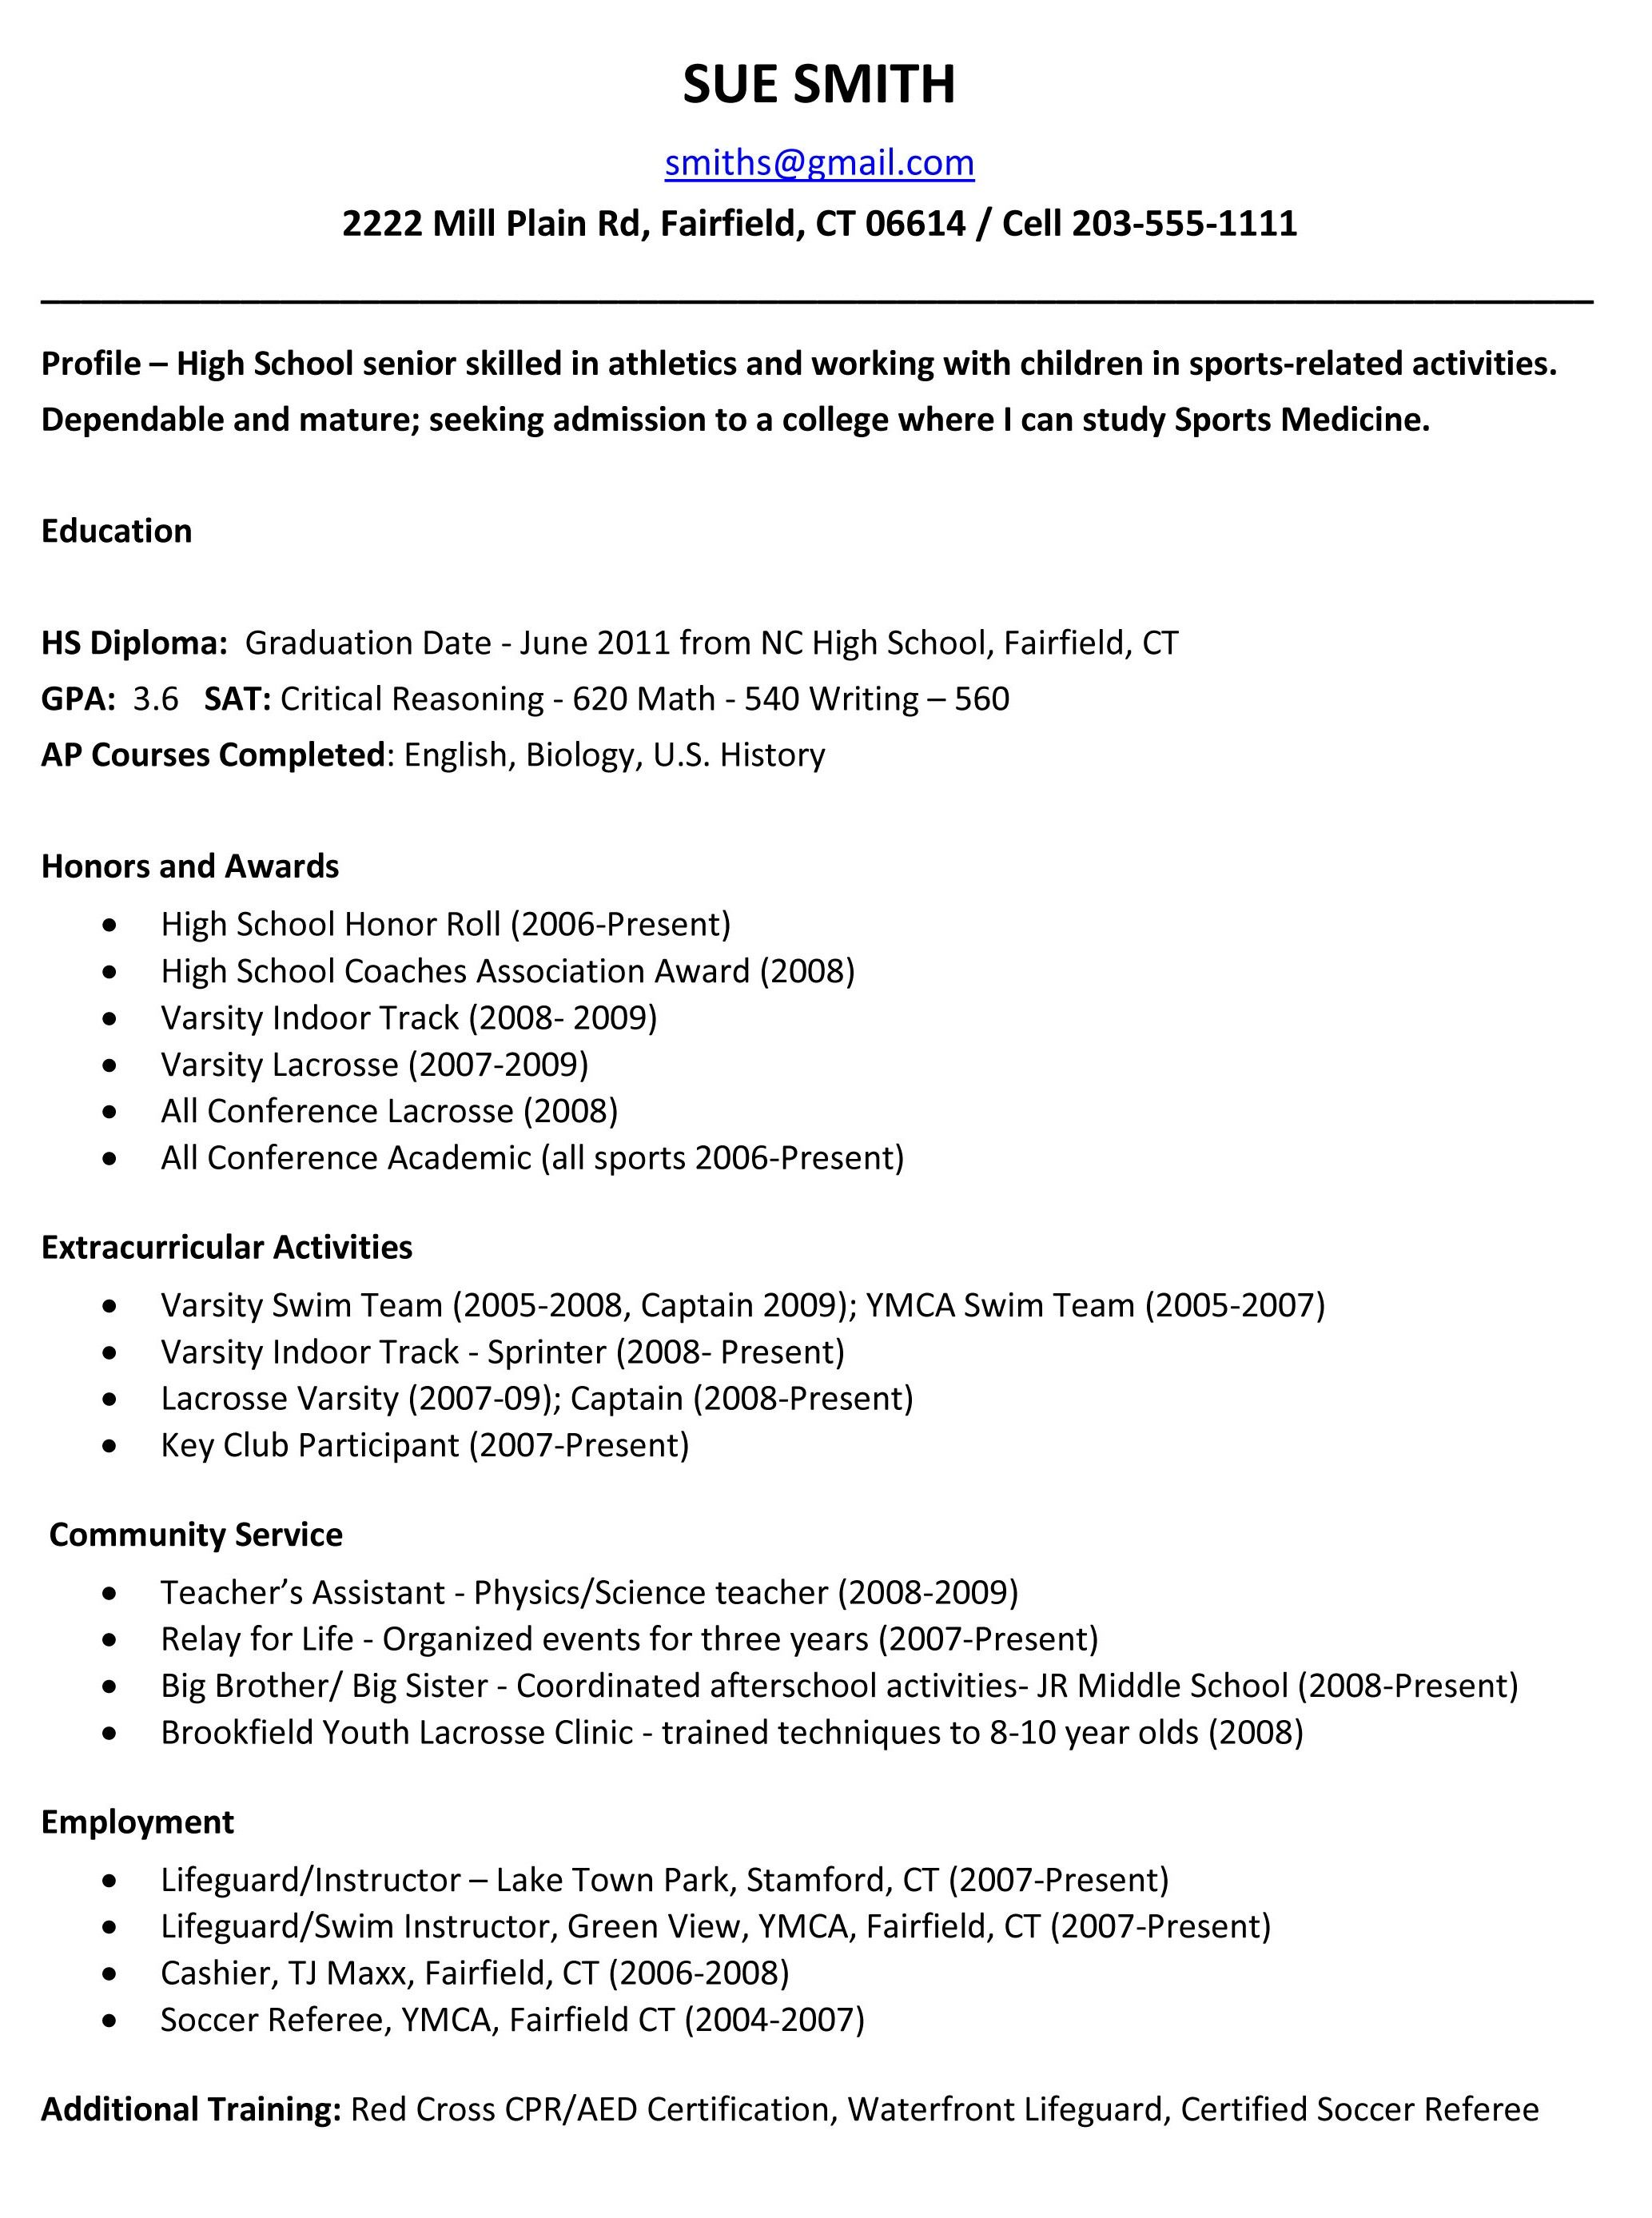 Example Resume For High School Students For College Applications School  Resume Templateregularmidwesterners.com | Regularmidwesterners  The Example Of Resume